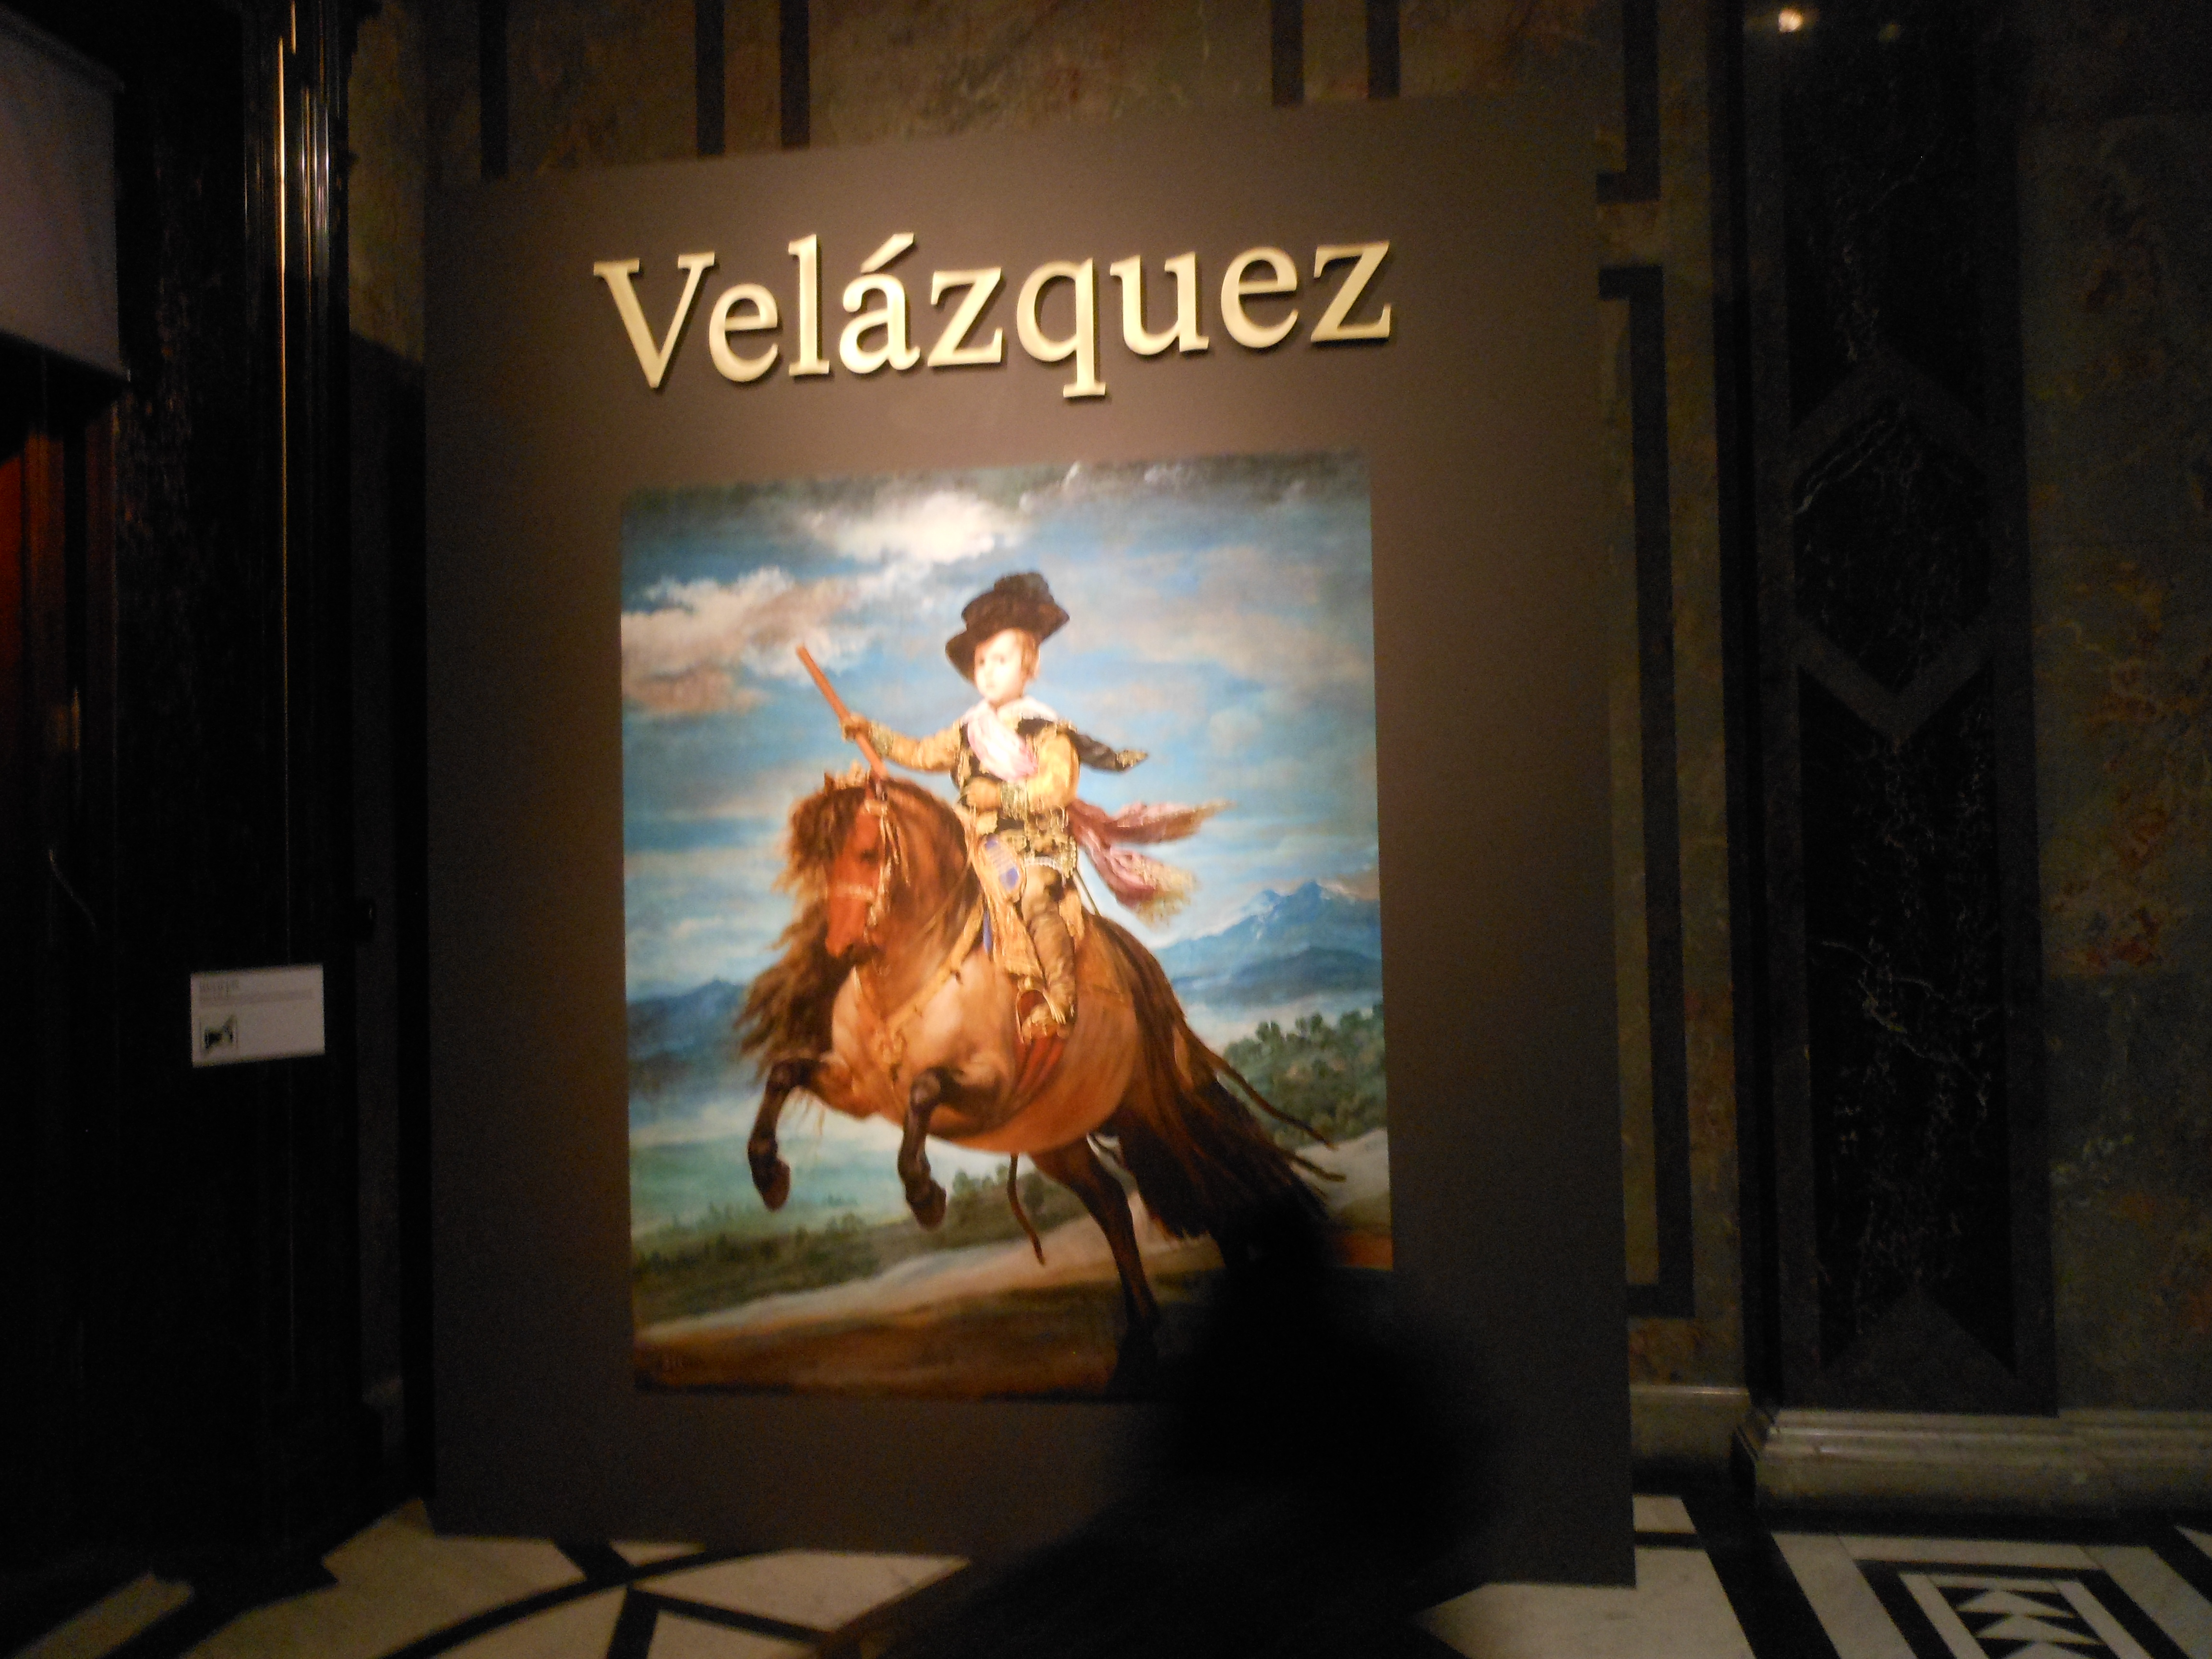 EQUESTRIAN PORTRAIT OF PRINCE BALTHASAR CHARLES BOY HORSE BY VELASQUEZ REPRO